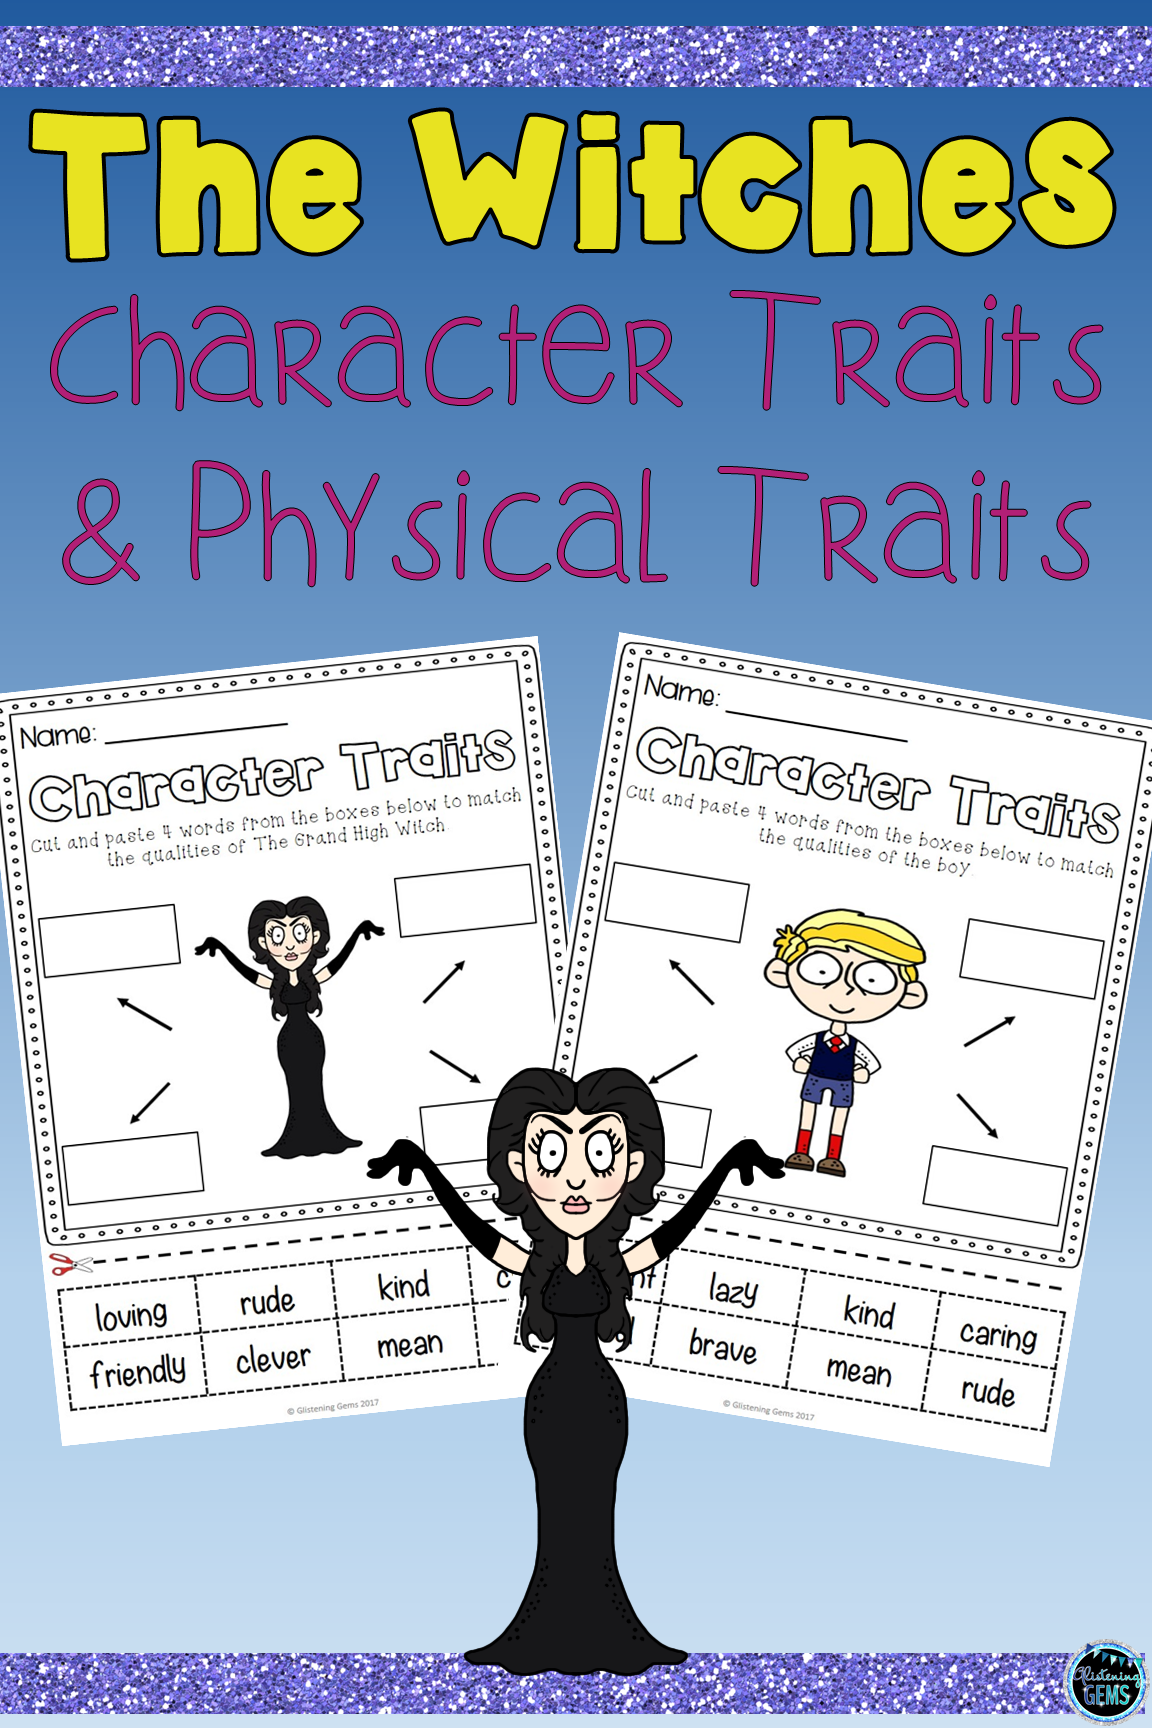 The Witches By Roald Dahl Character Traits Activities